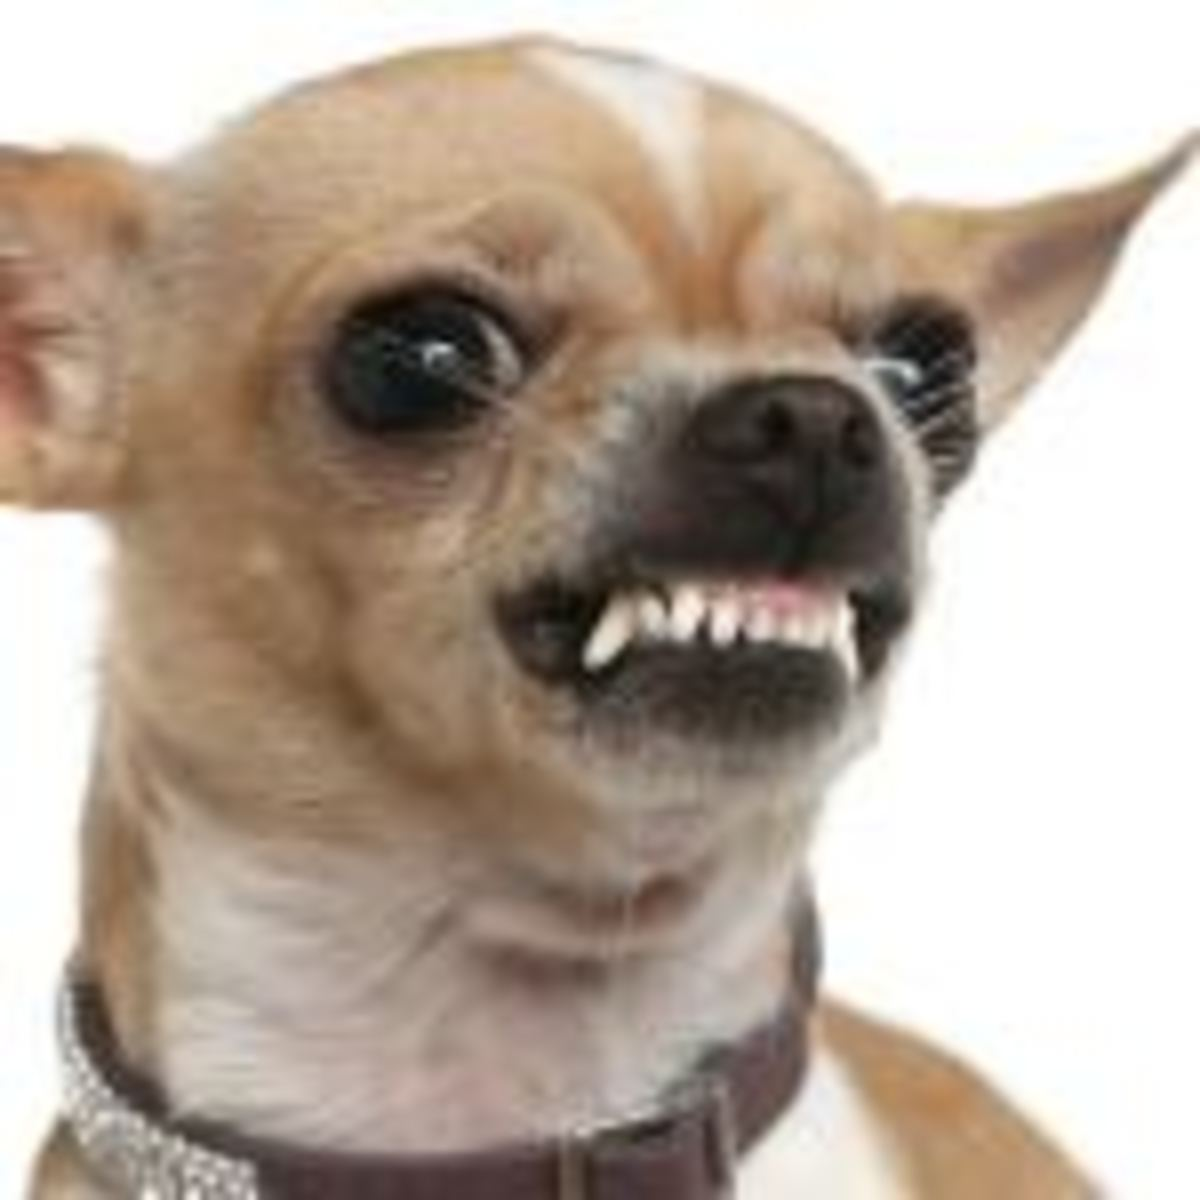 Don't be deceived by size - Like so many fuzzy piranhas, a small pack of Chihuahuas can devour a mailman down to bare bone in a matter of minutes, leaving only a satchel and a few shredded remnants of letters.